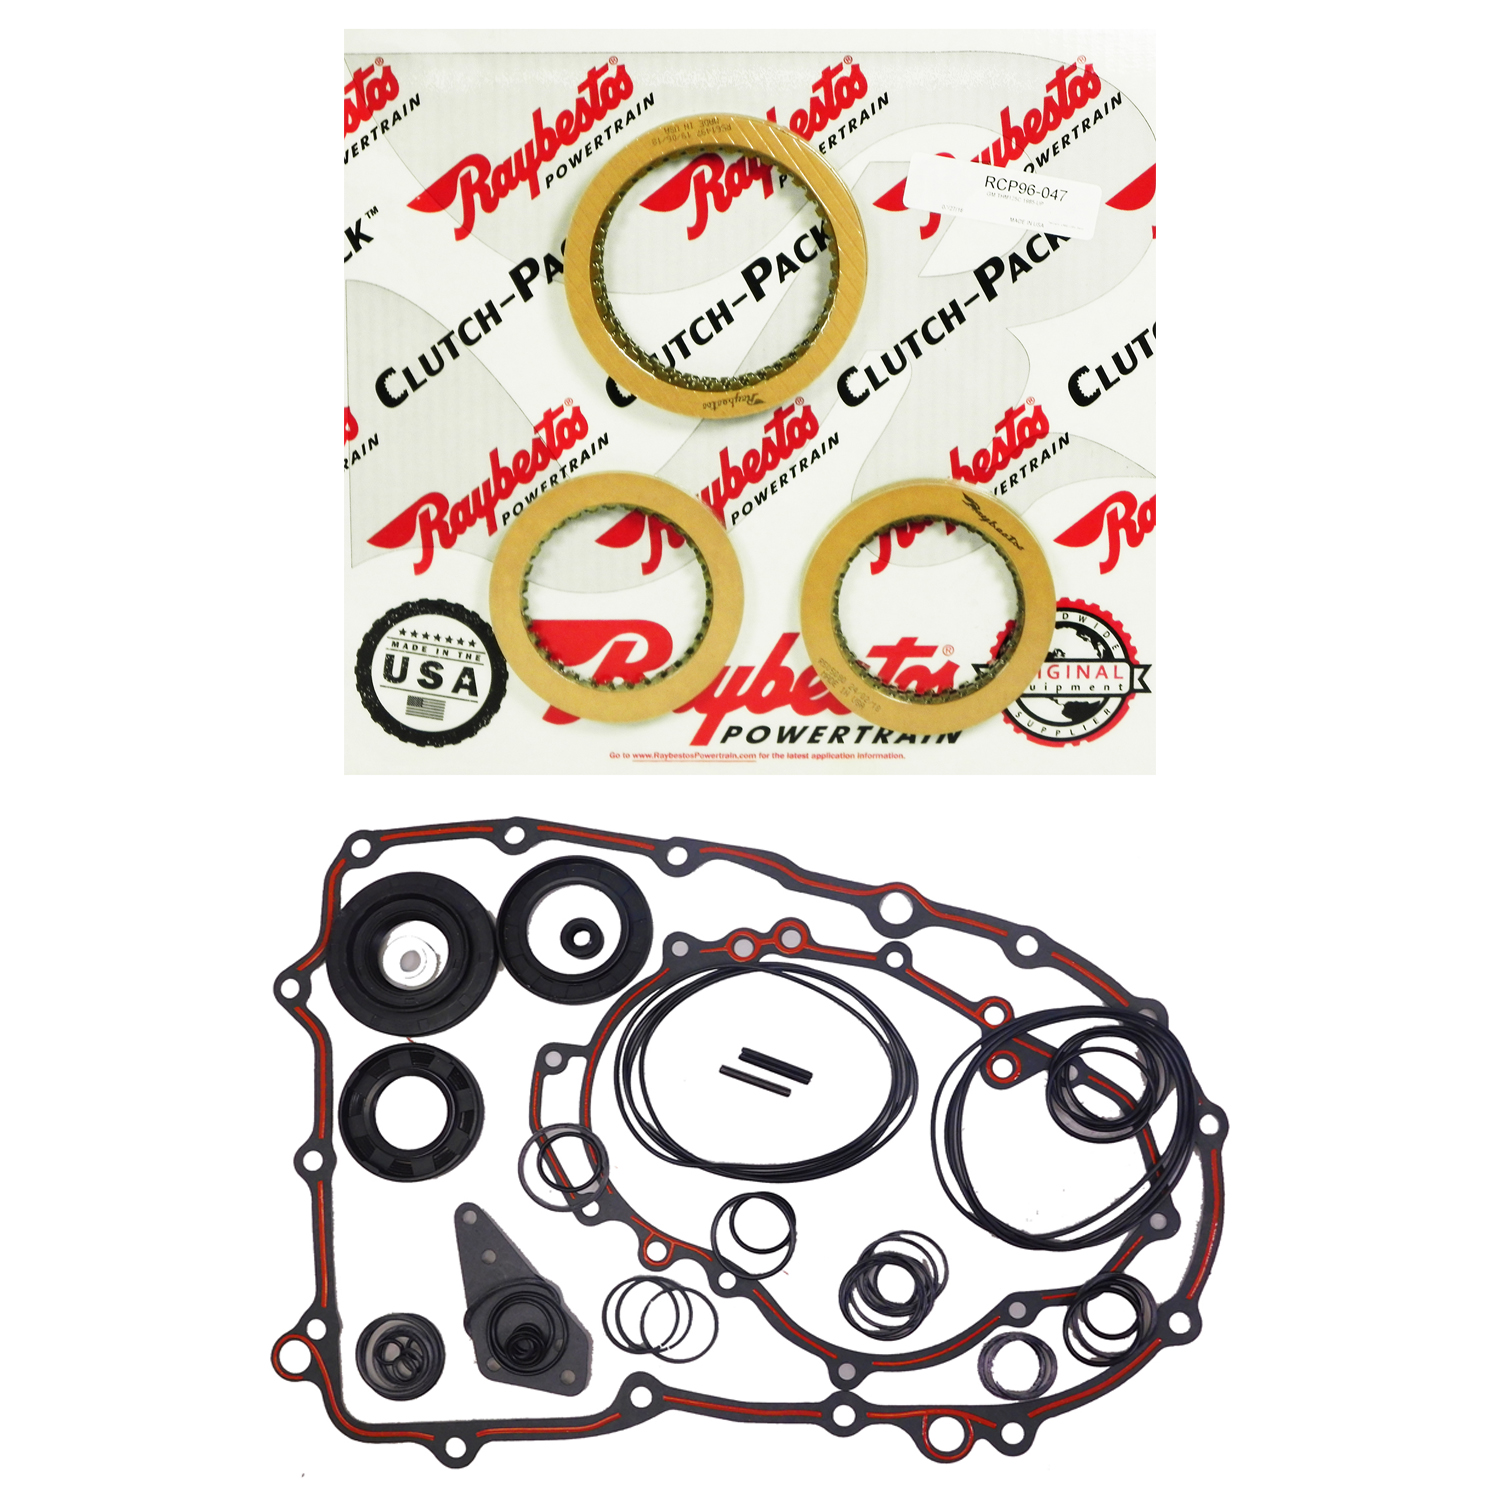 AZ60004B | L1984-ON Master Rebuild Kit